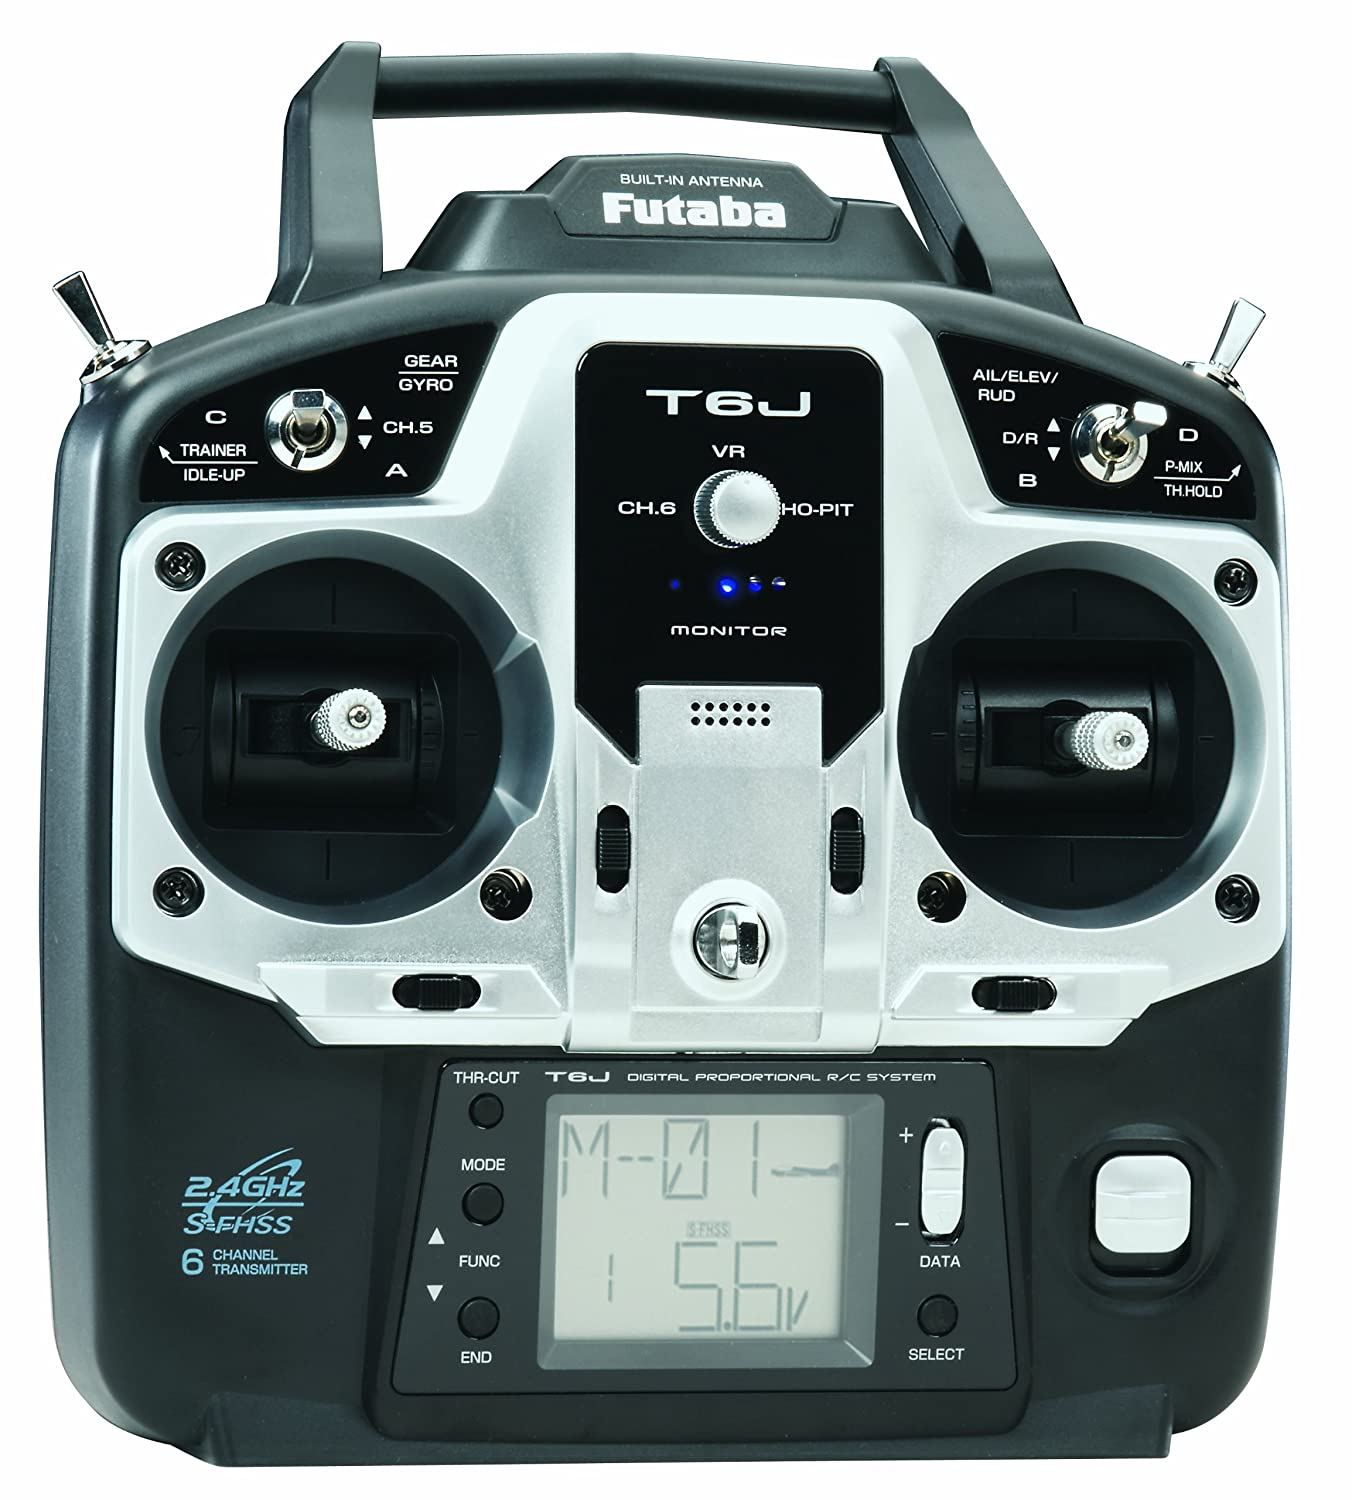 Amazon Futaba 6J 6 Channel S FHSS 2 4GHz Radio Transmitter with R2006GS Receiver Toys & Games